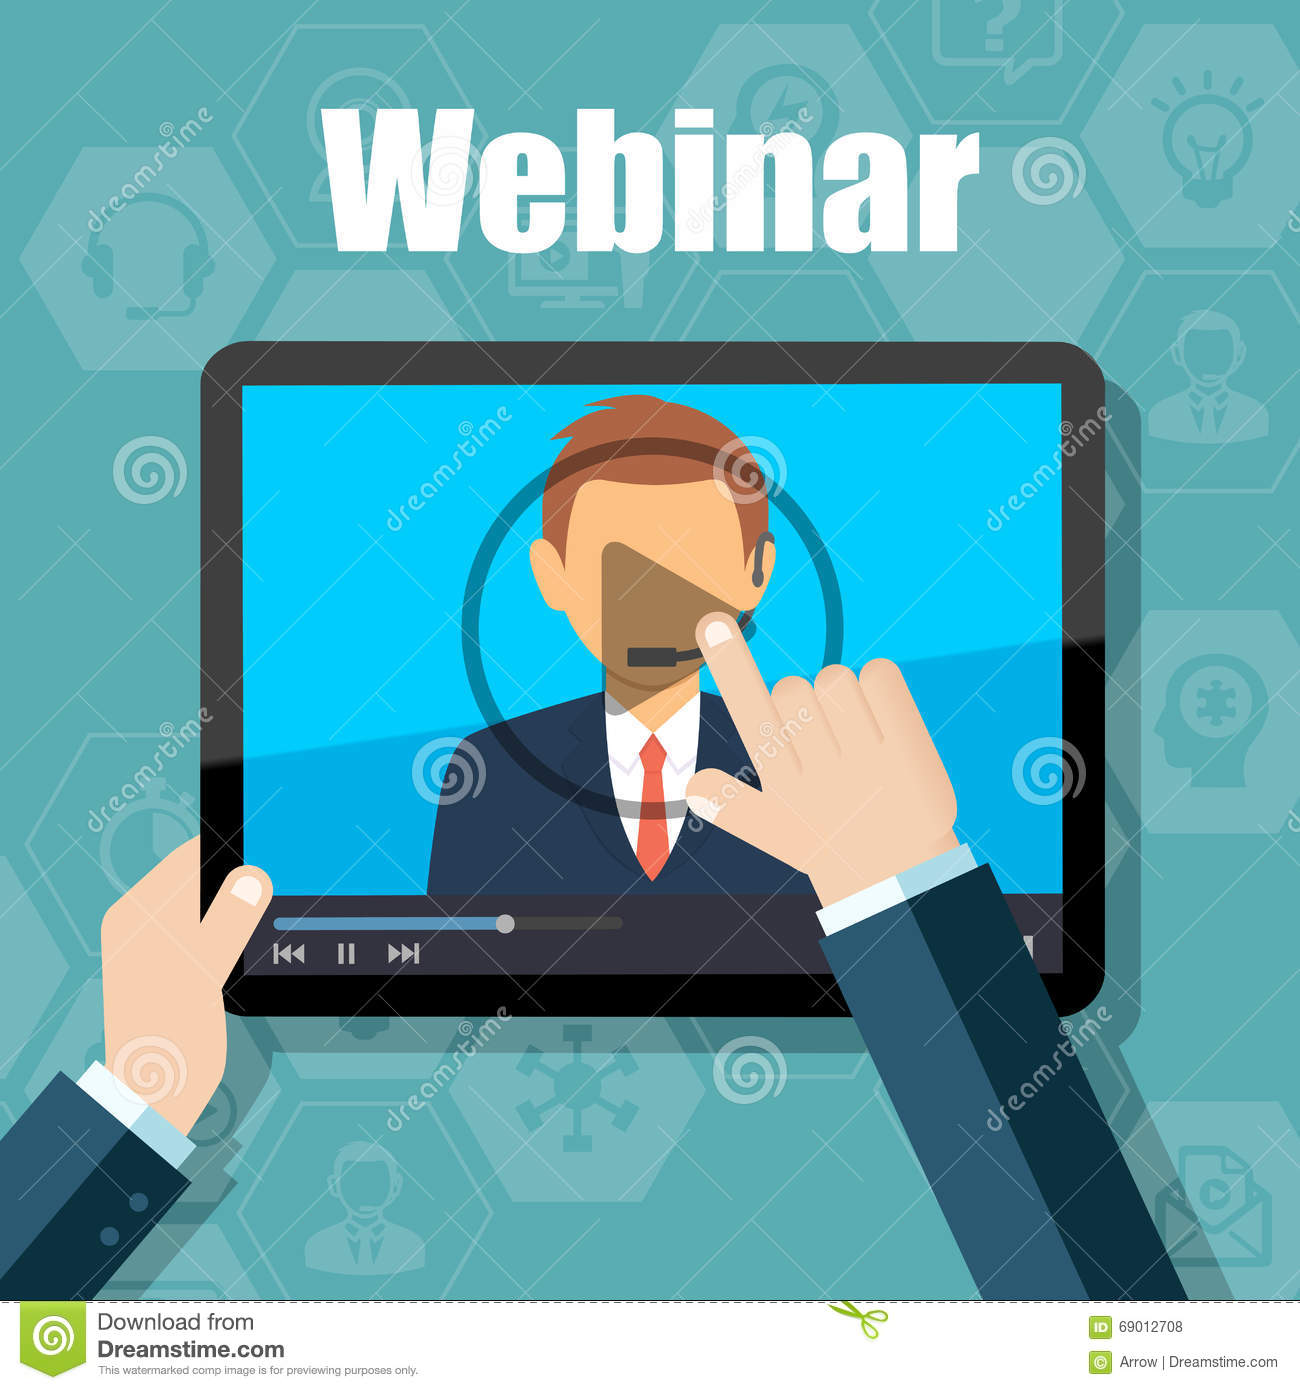 Webinar Training, Online Conference And Education Using Mobile.